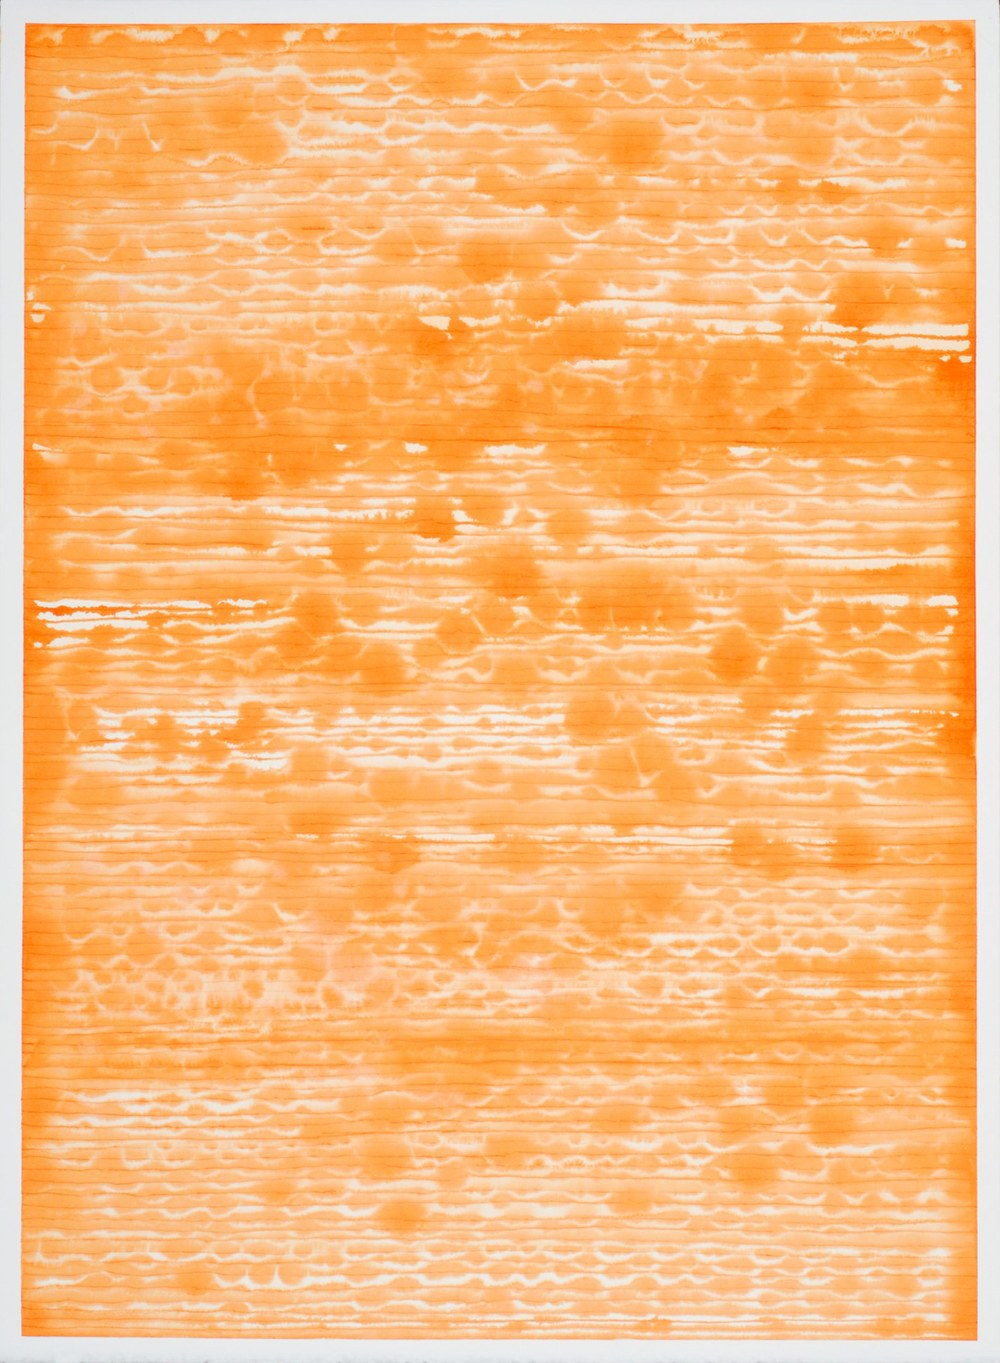 Lisa Espenmiller, 08.31.11 (the groundless ground), 2011, ink on paper, 30 x 22 inches